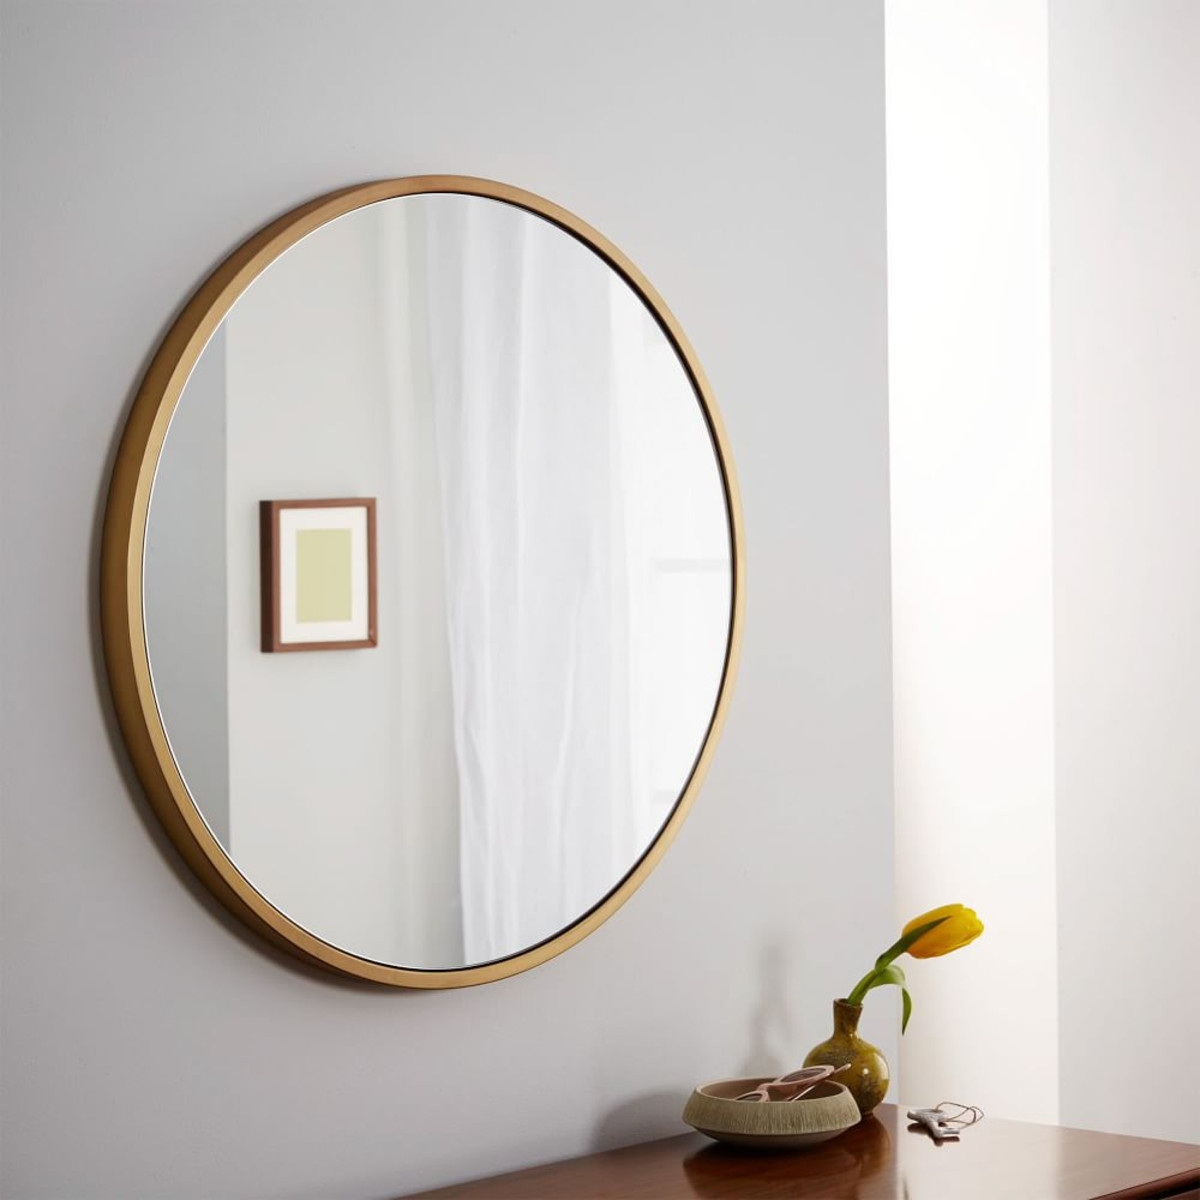 Metal Framed Round Wall Mirror Antique Brass Main Entry In Mirror Circles For Walls (Image 11 of 15)